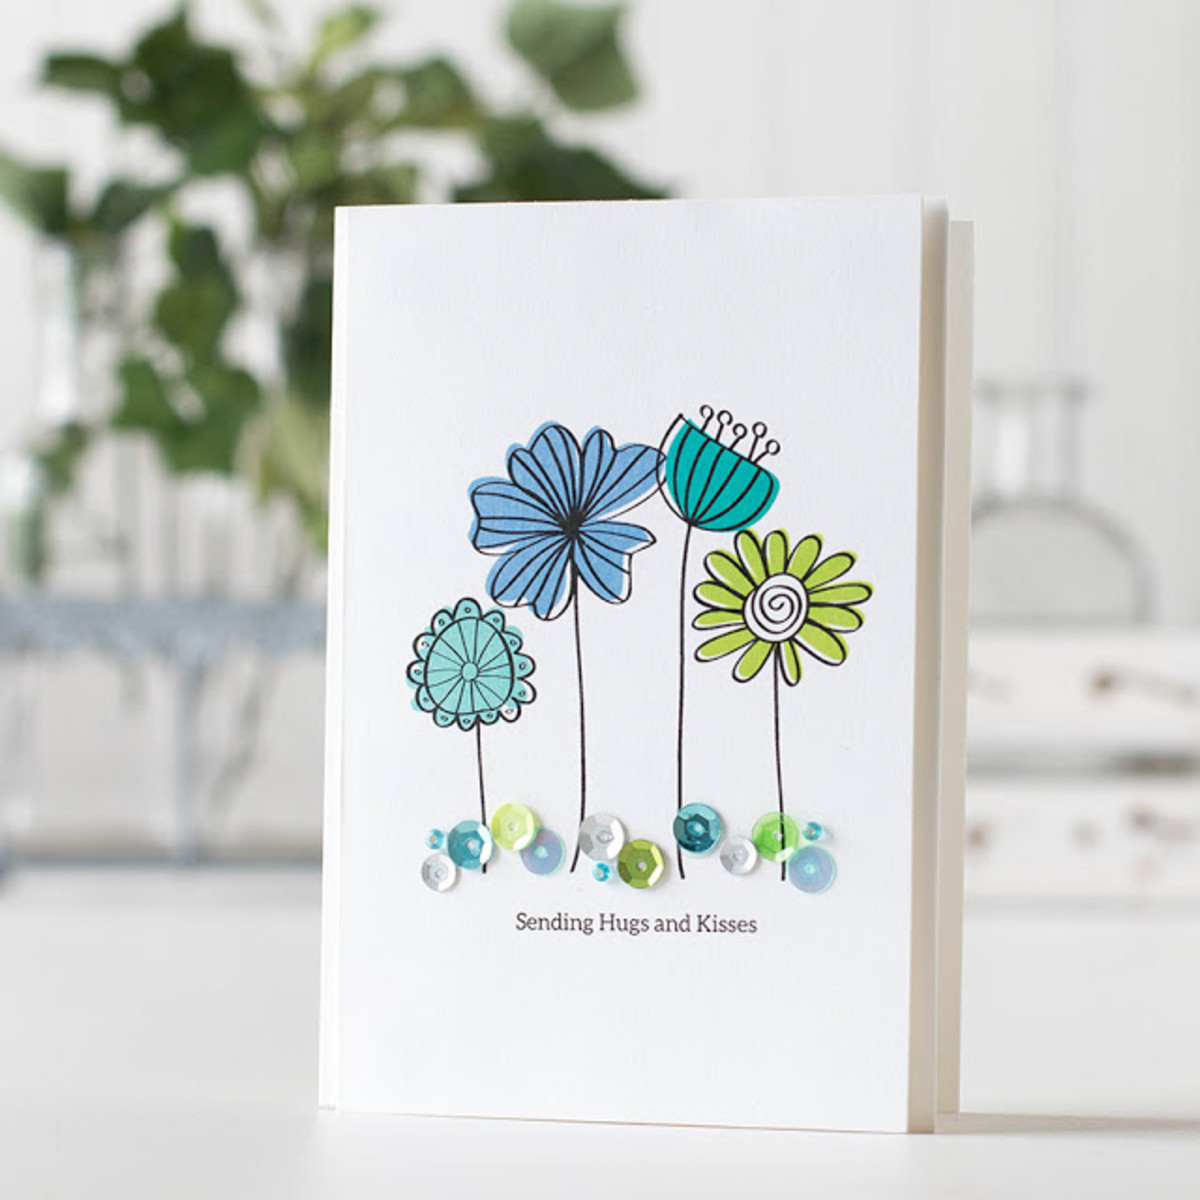 Flower stamps can be stamped directly on a project or stamped and cut out